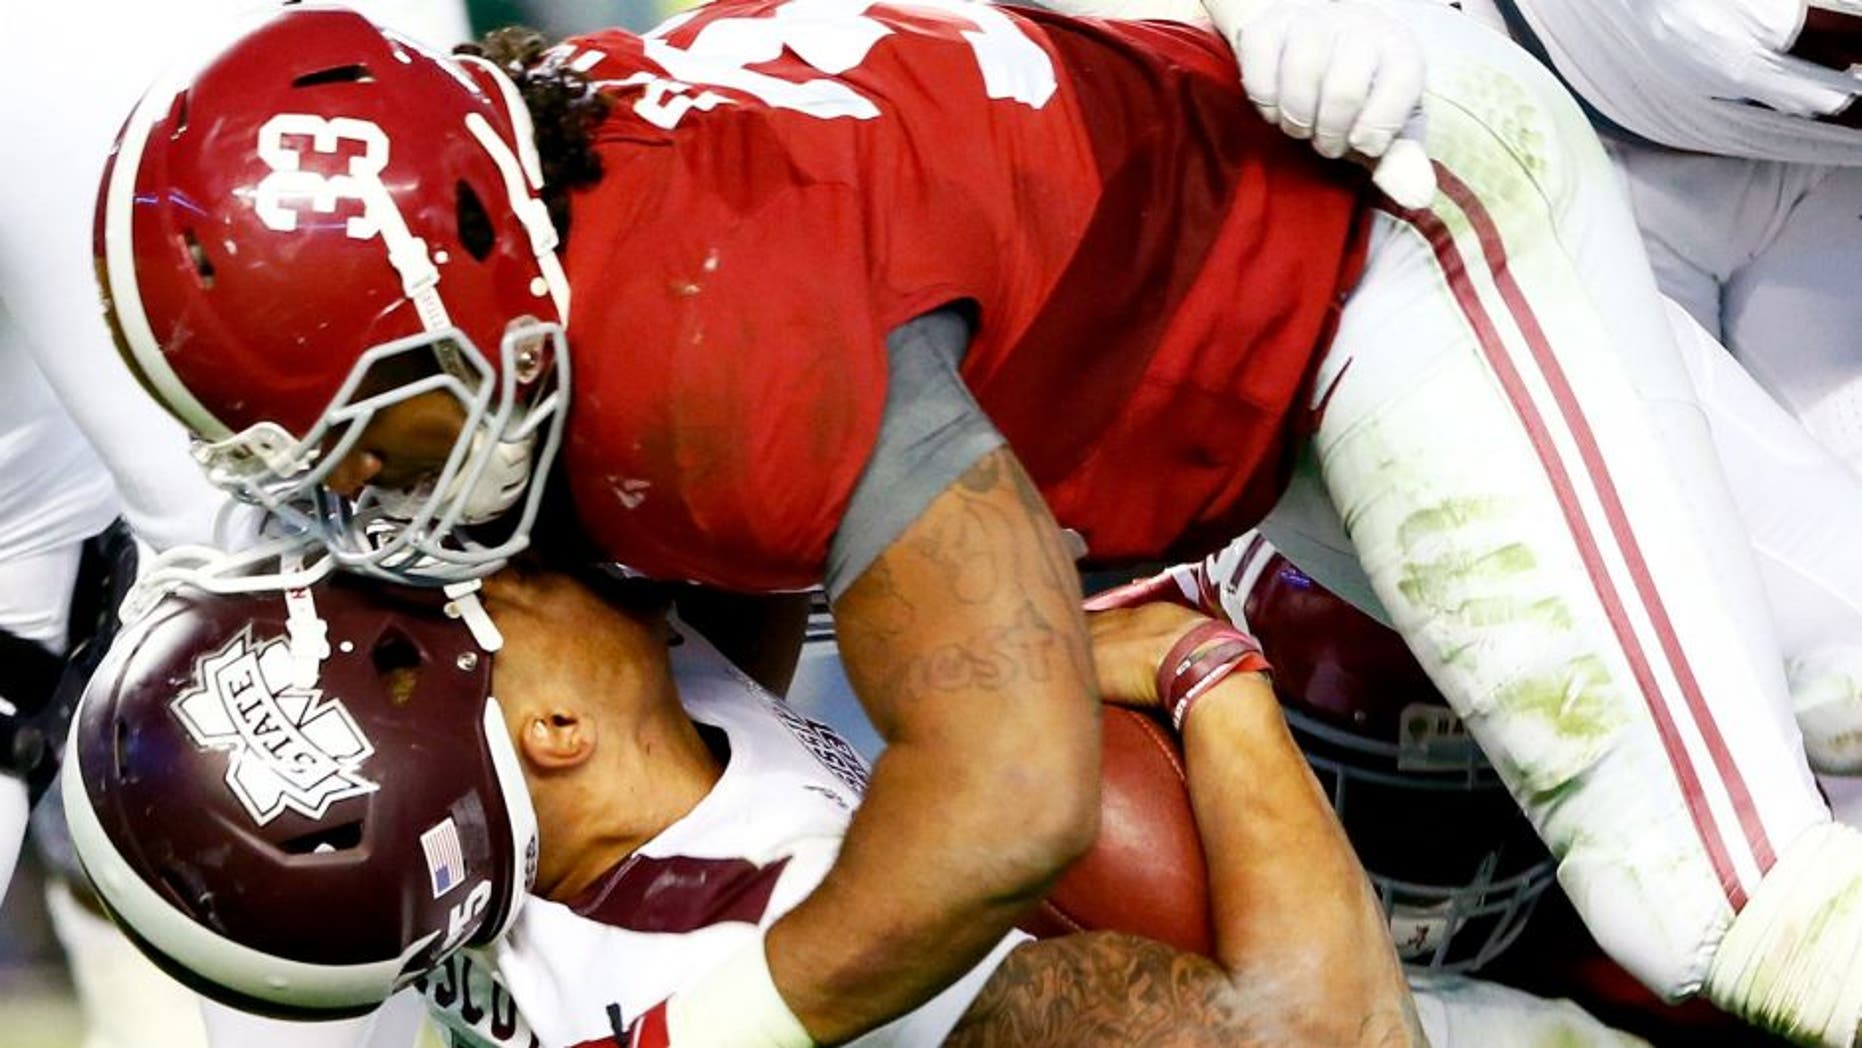 Dak Prescott #15 of the Mississippi State Bulldogs loses his helmet as he is tackled by Trey DePriest #33 of the Alabama Crimson Tide at Bryant-Denny Stadium on November 15, 2014 in Tuscaloosa, Alabama. (Photo by Kevin C. Cox/Getty Images)